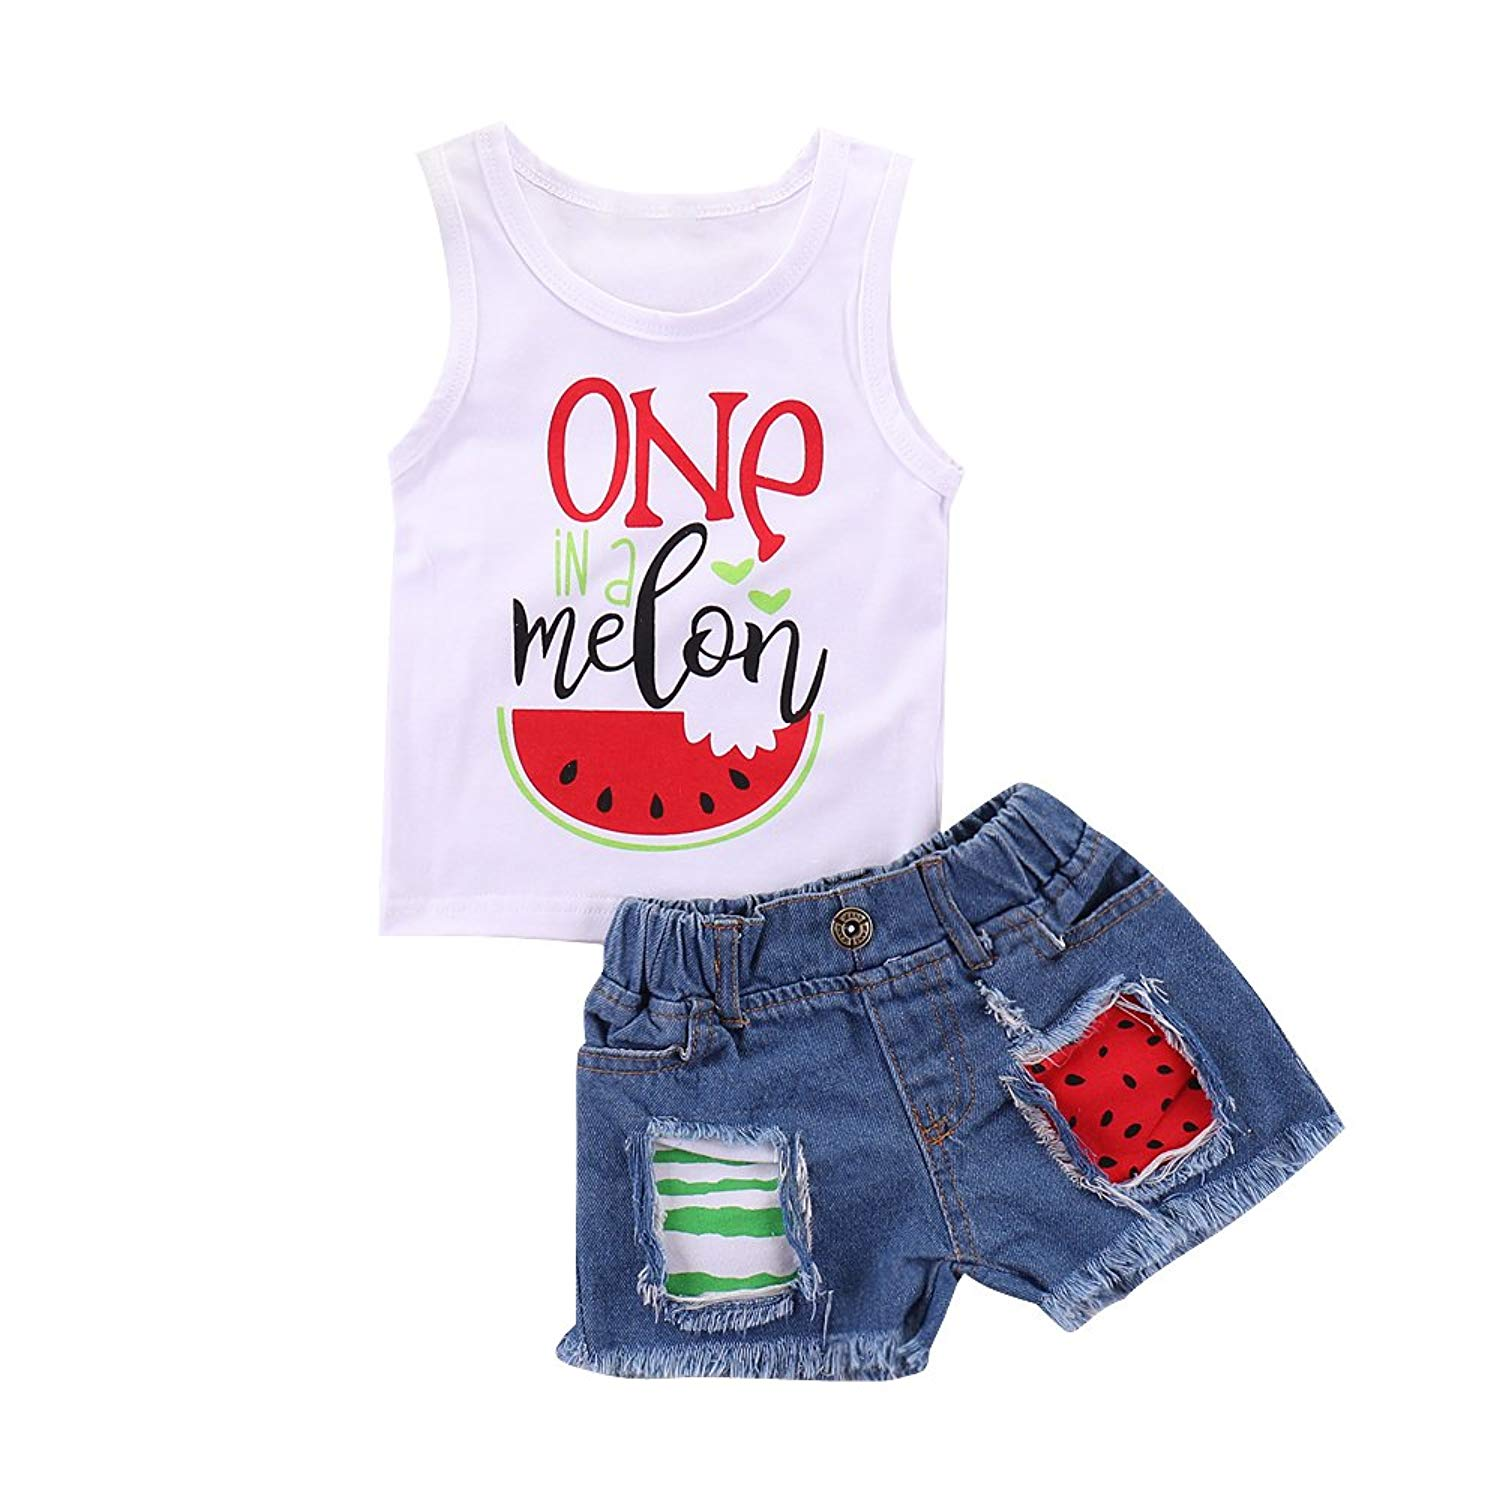 982d9e66695 Get Quotations · SOBOWO Infant Toddler Baby Boys Girls Summer Clothes Set